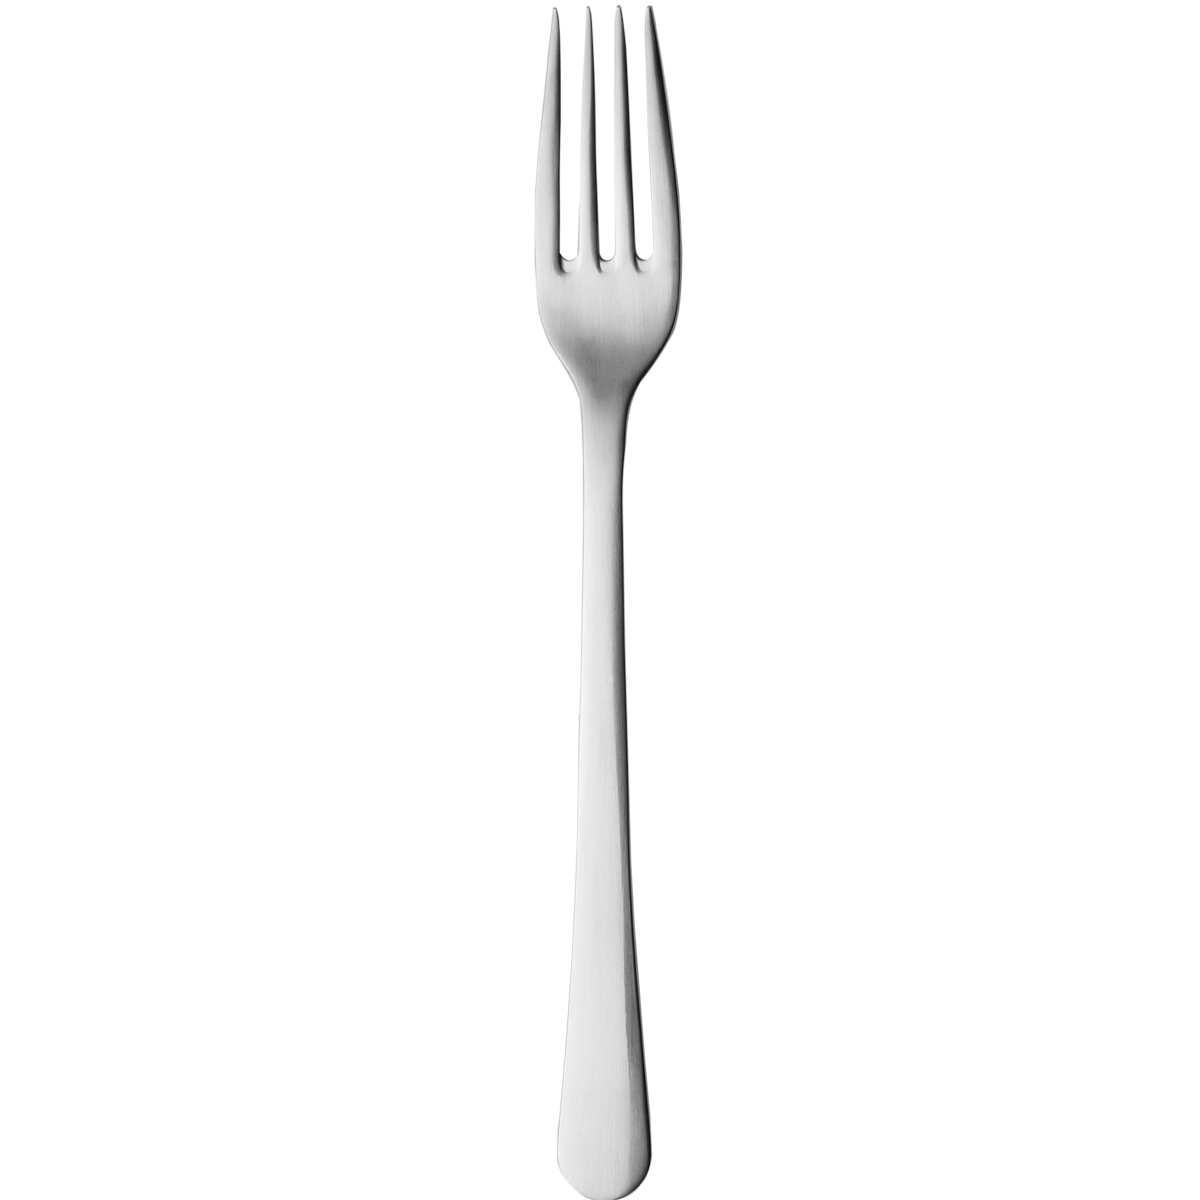 Fork clipart metal spoon Fork picture fork PNG download